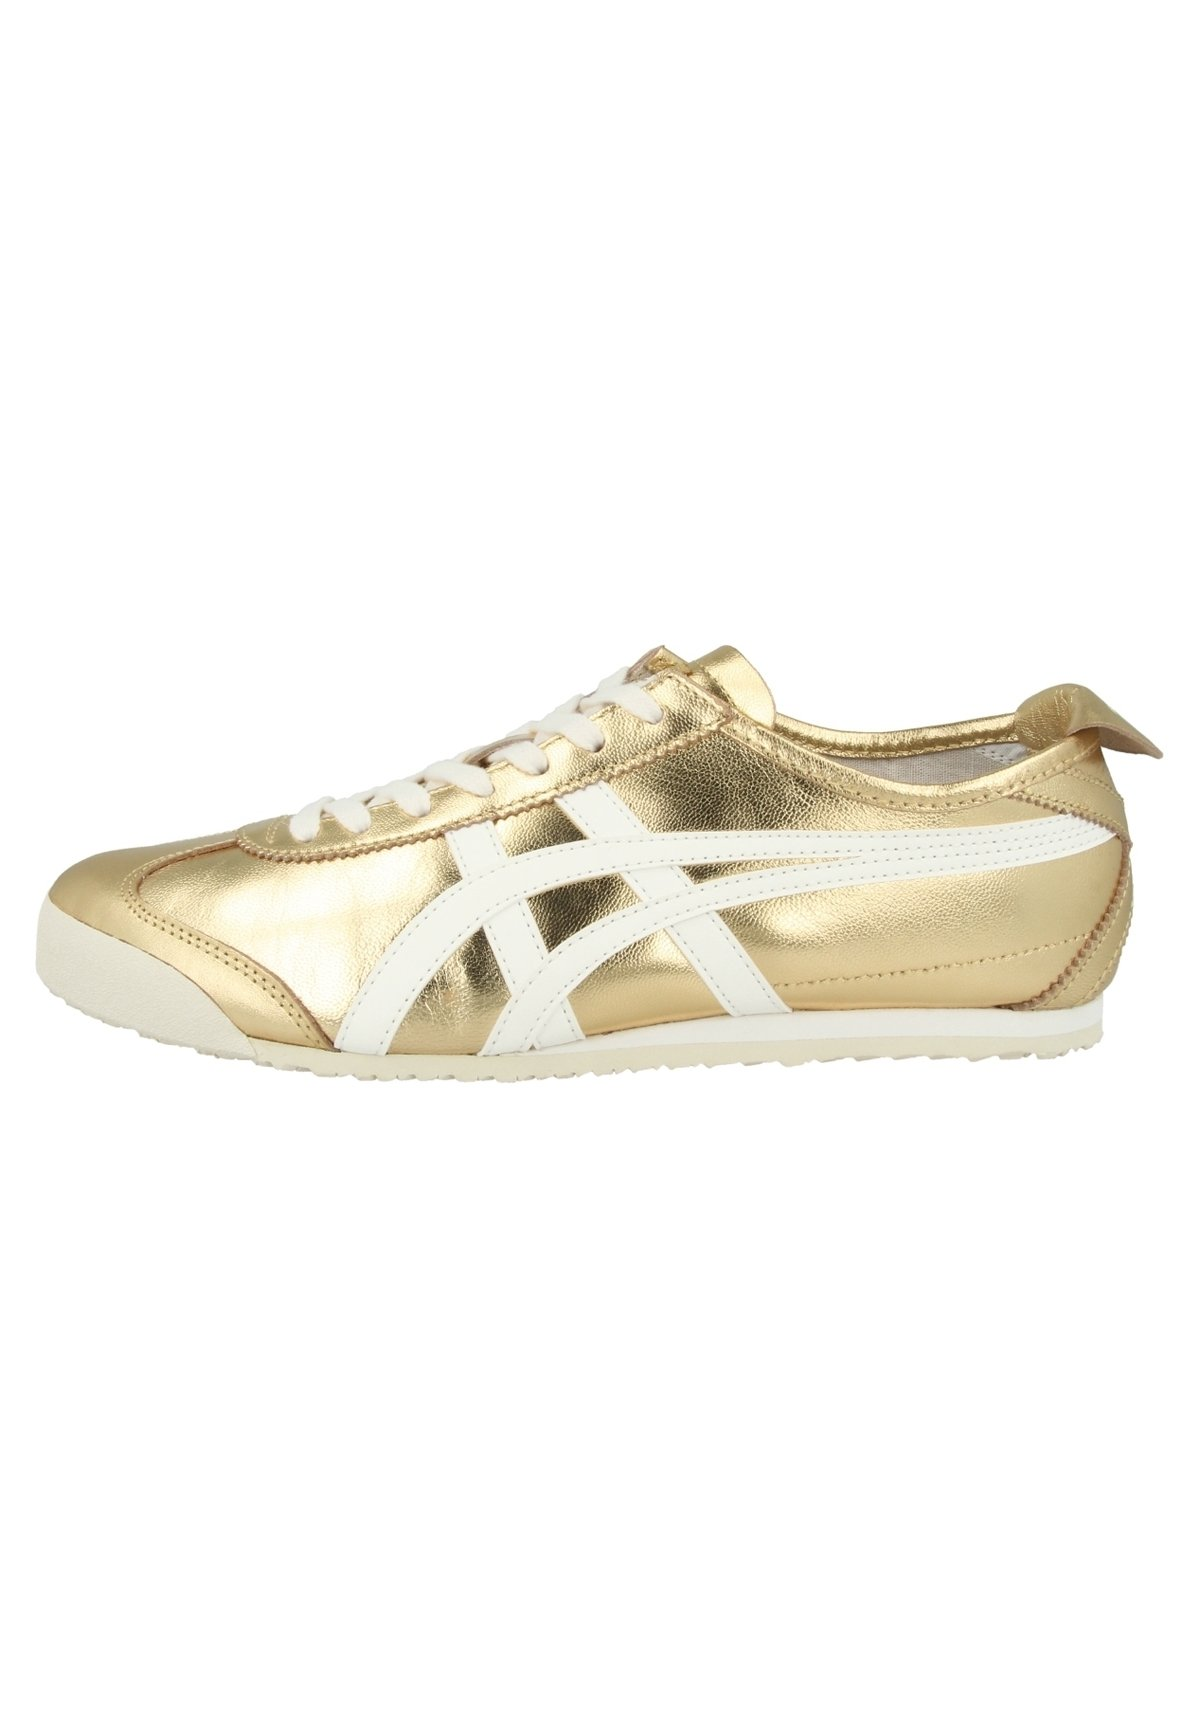 Femme MEXICO 66 - Baskets basses - gold-white